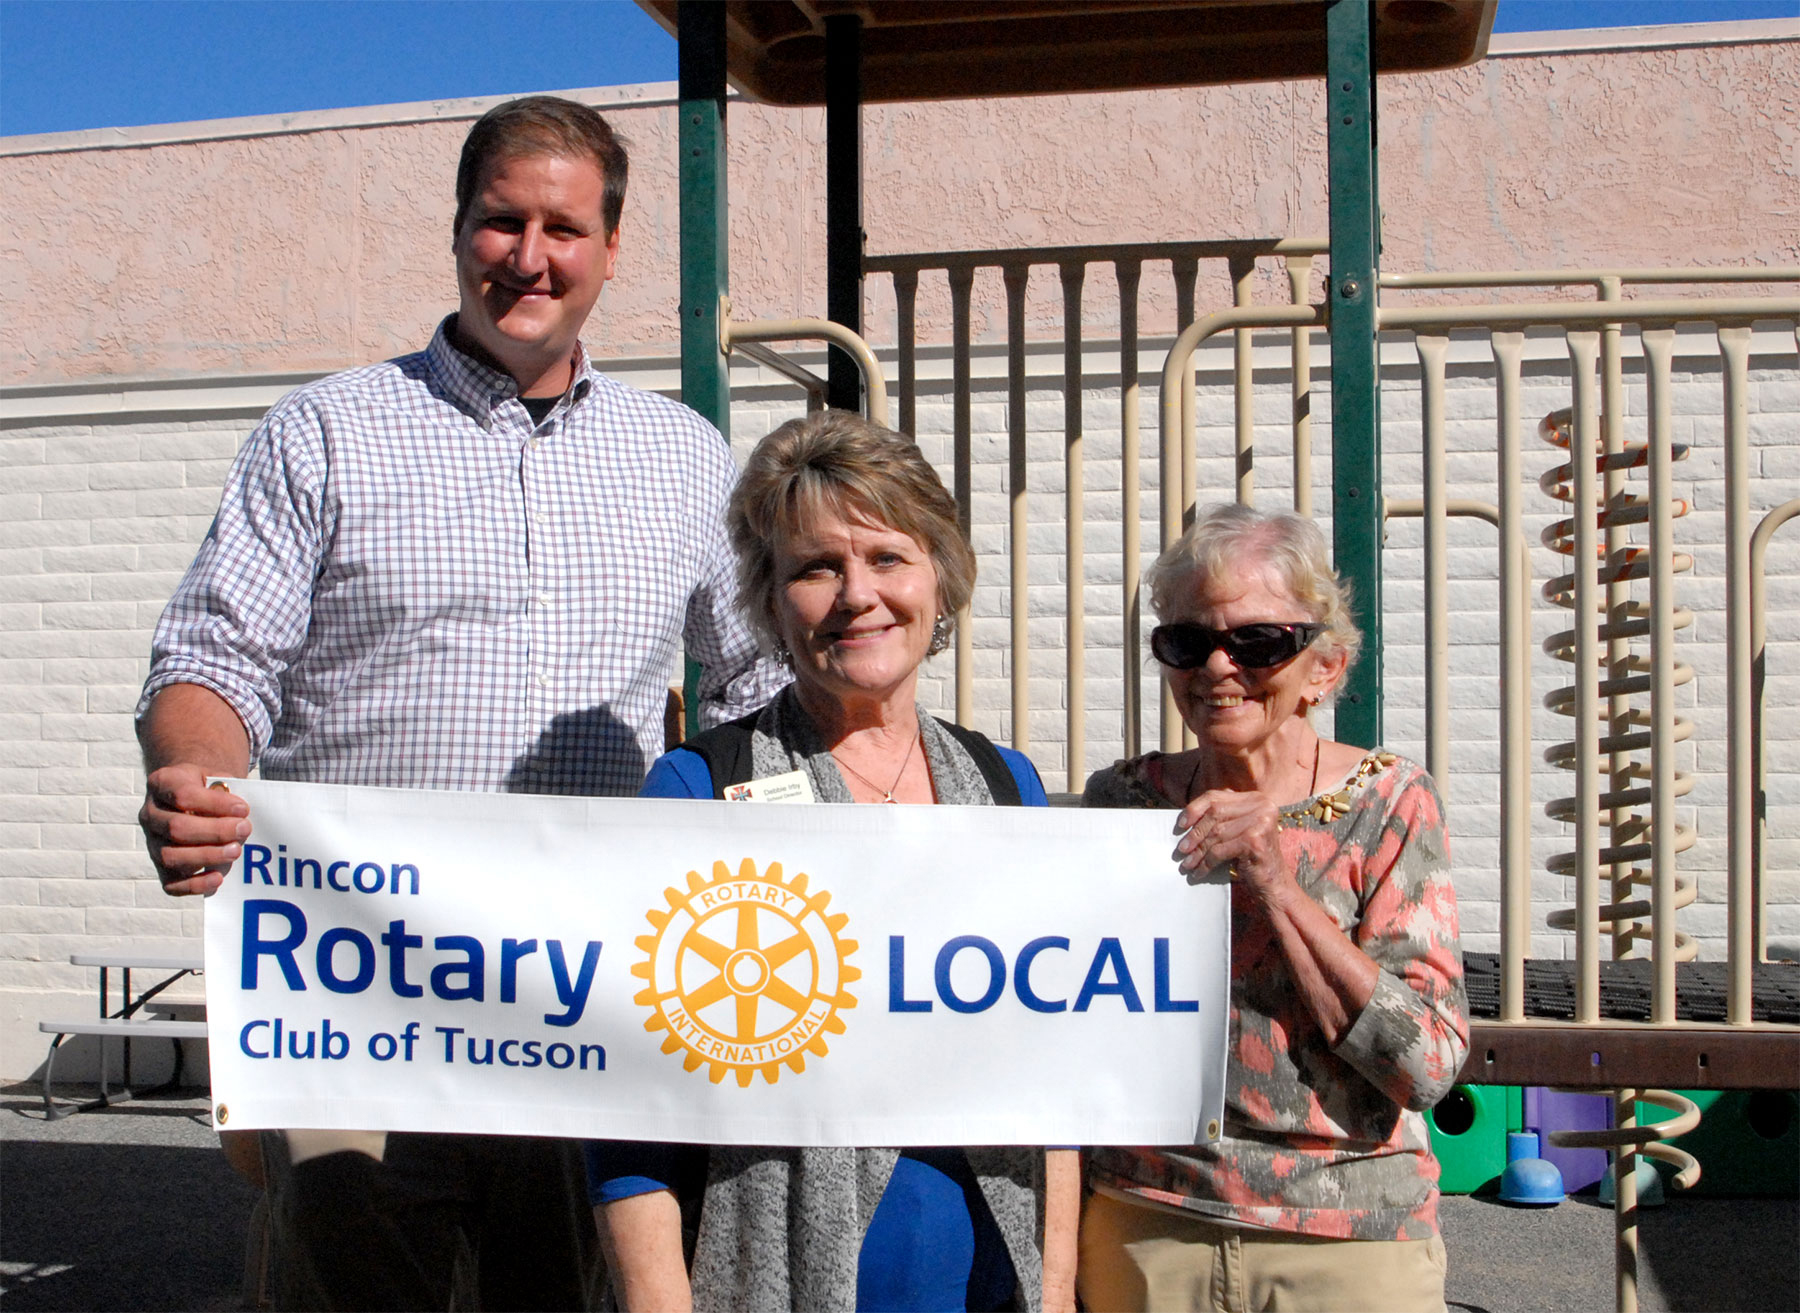 Rincon Rotary helps Tanque Verde Lutheran upgrade their playground through the Rotary Local program.